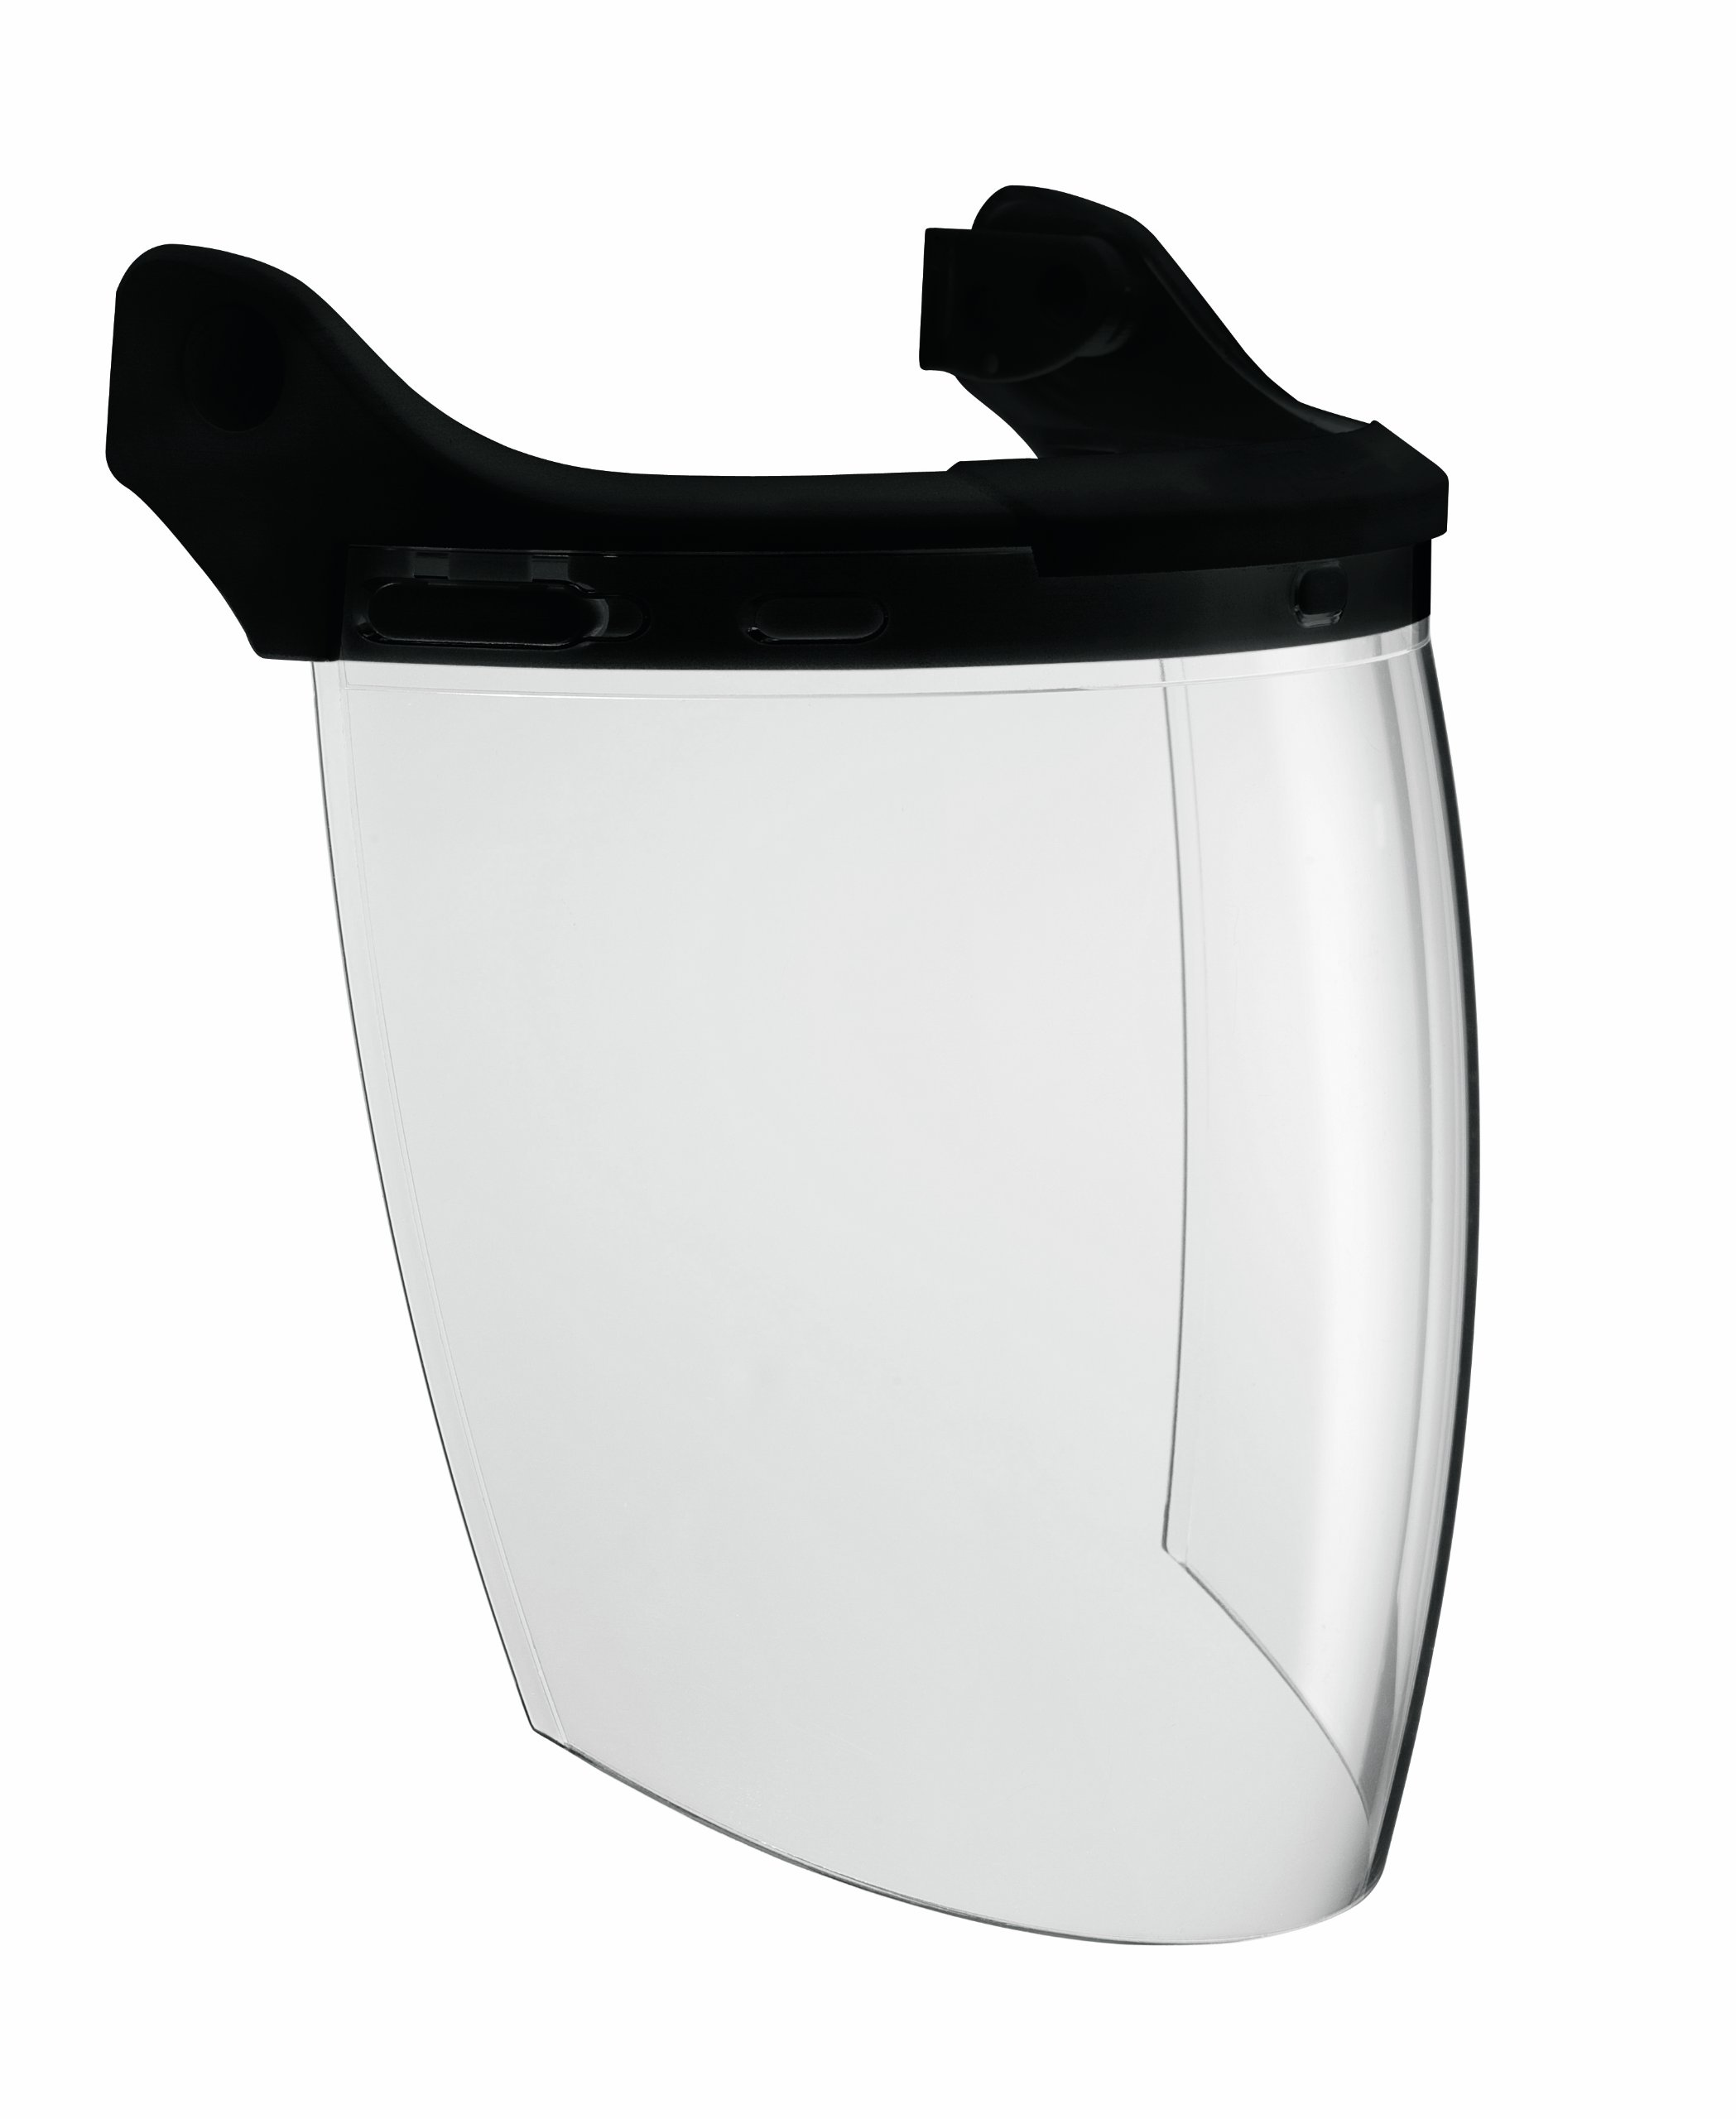 PETZL - VIZEN, Eye Shield with Electrical Protection